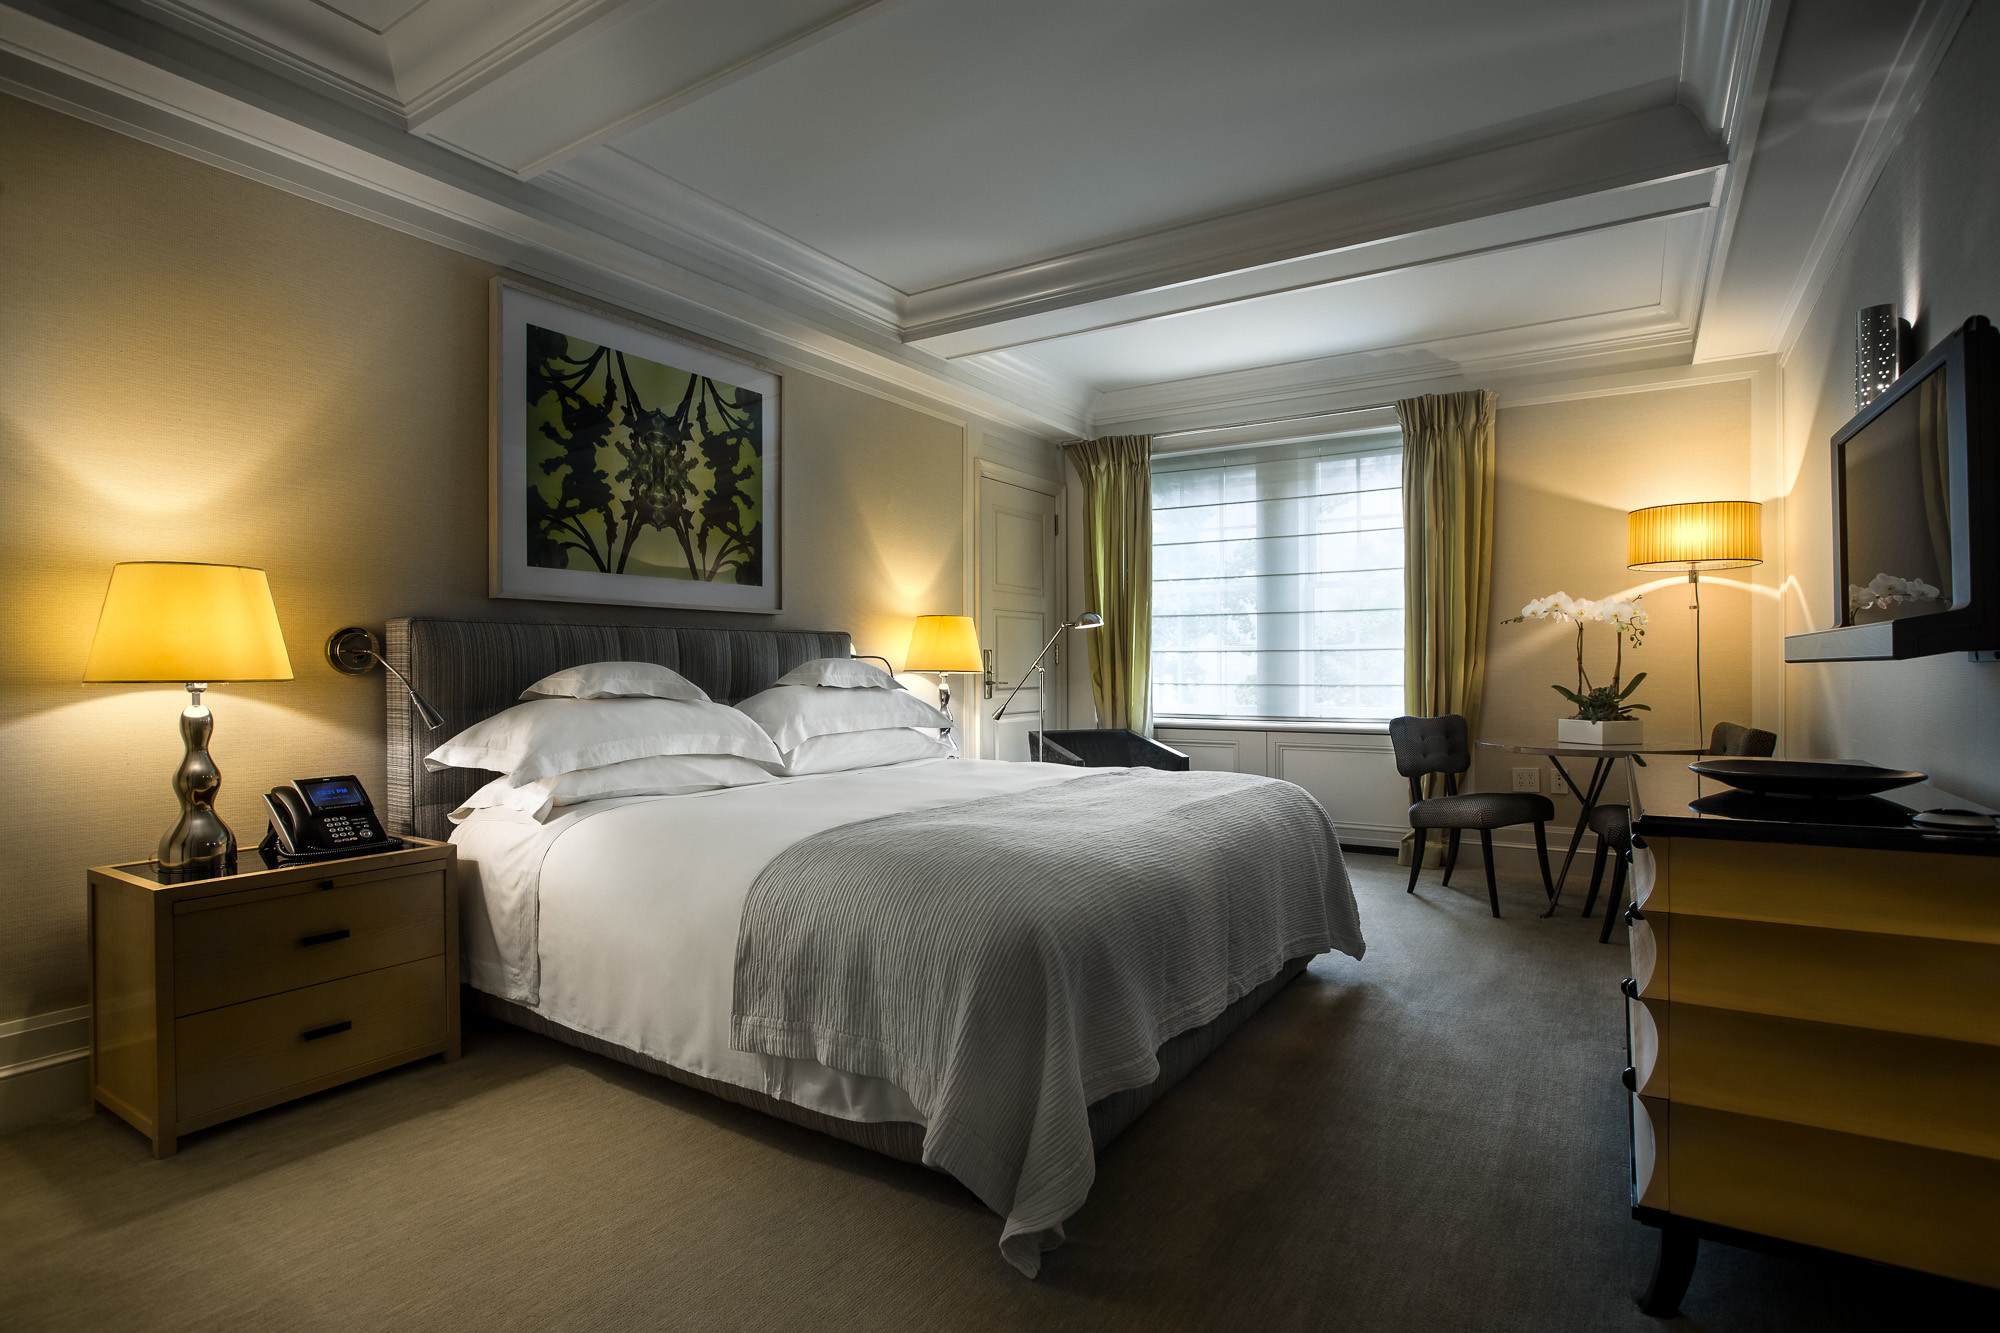 Nyc Hotel Suites 2 Bedroom 2 Bedroom Hotel Suites Nyc Hotel Accommodations Roxy Penthouse